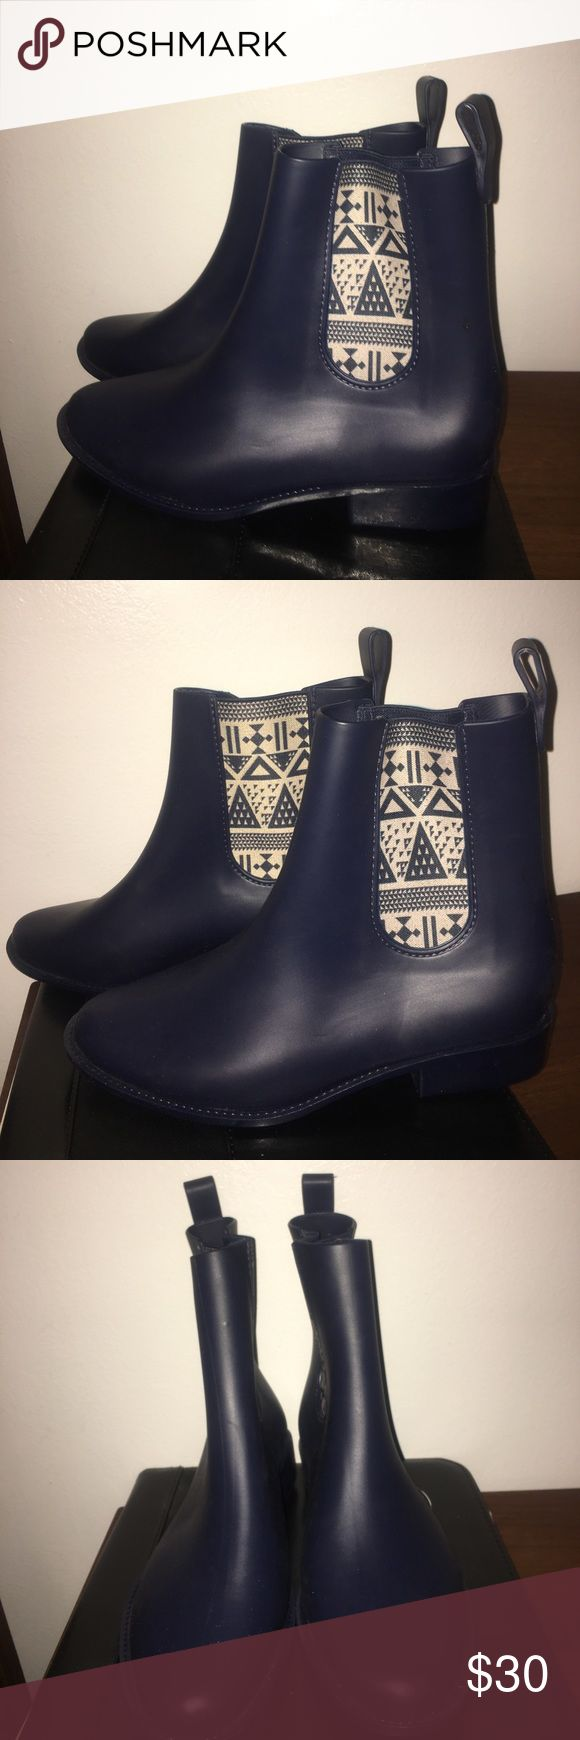 Rain boots ❗️Cleaning closet sale❗️Navy rain boots💦 used only like 2 times in great condition. Melissa Shoes Winter & Rain Boots